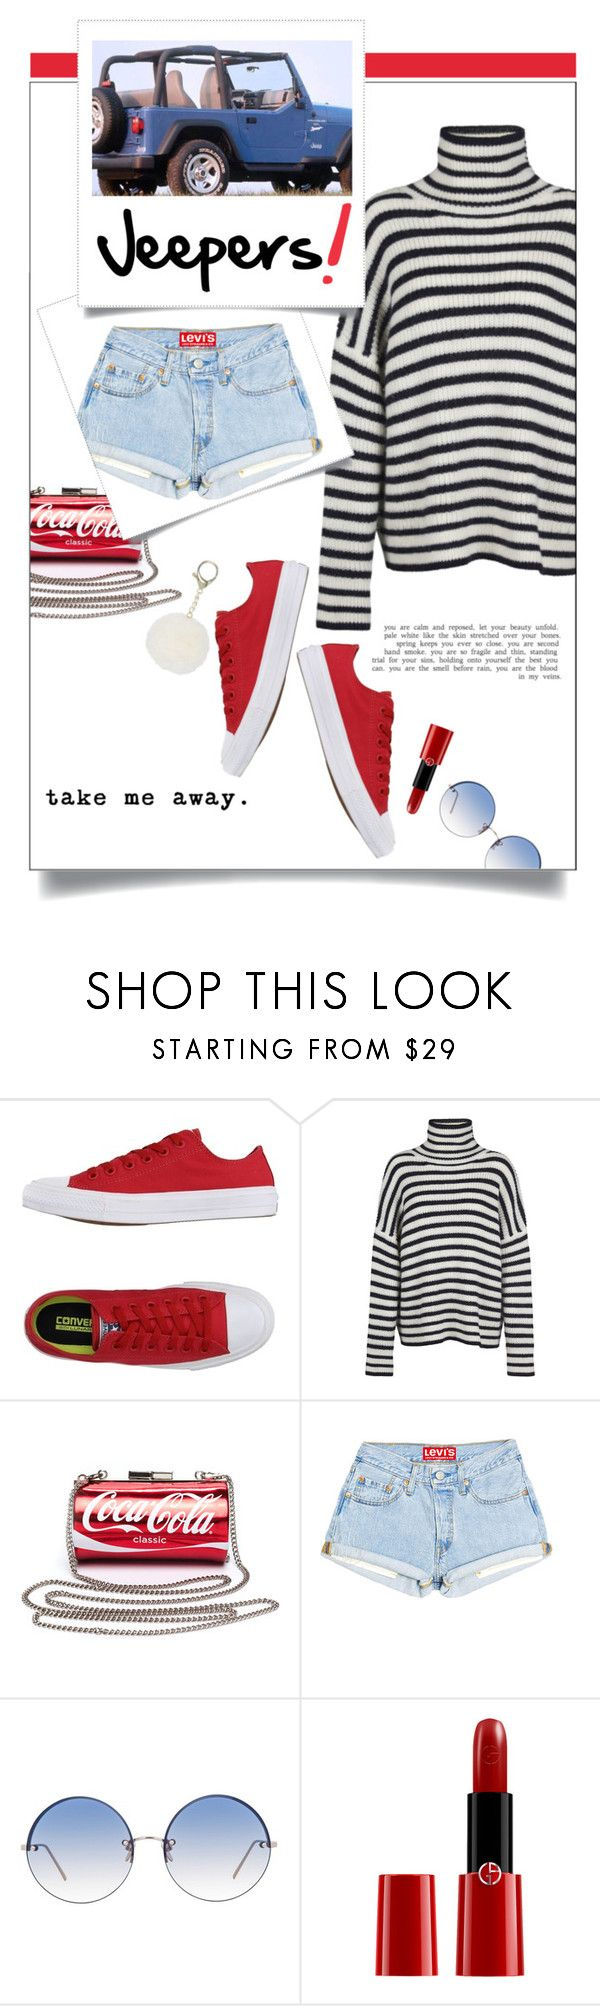 """Weekends."" by s-elle ❤ liked on Polyvore featuring Converse, Samsøe & Samsøe, Wrangler, Linda Farrow, Giorgio Armani, weekend, sneakers, roadtrip and denimshorts"